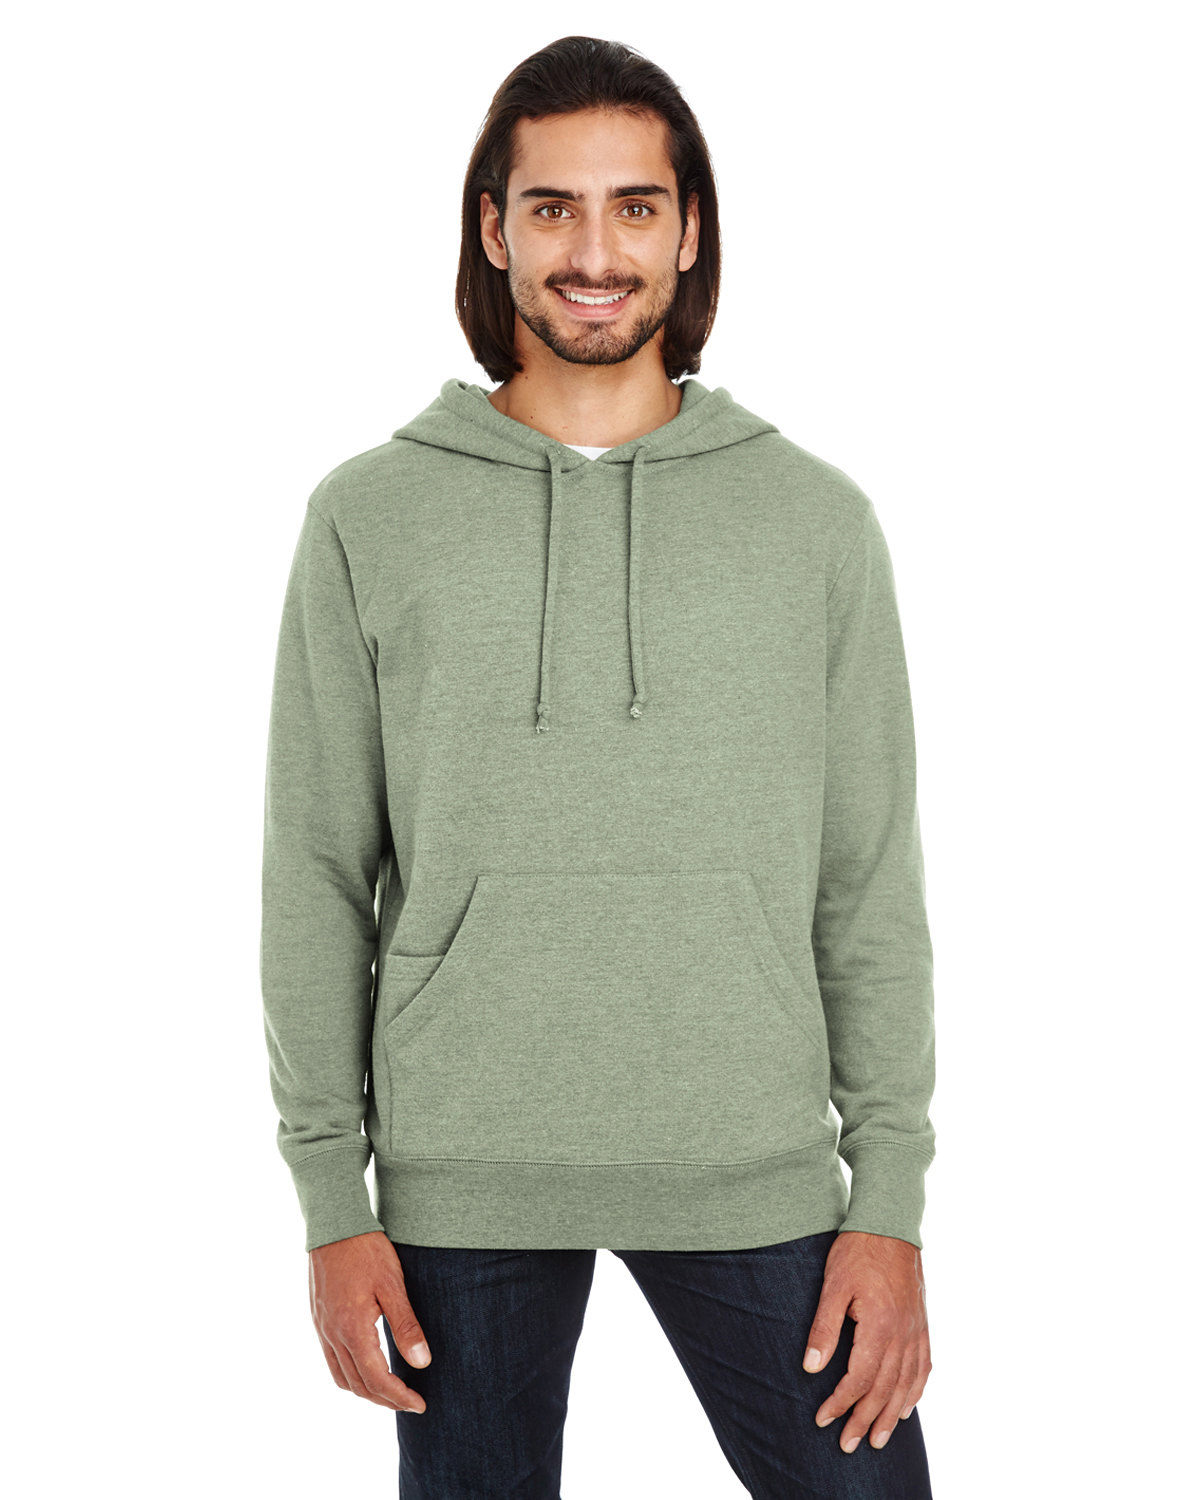 Unisex Triblend French Terry Hoodie